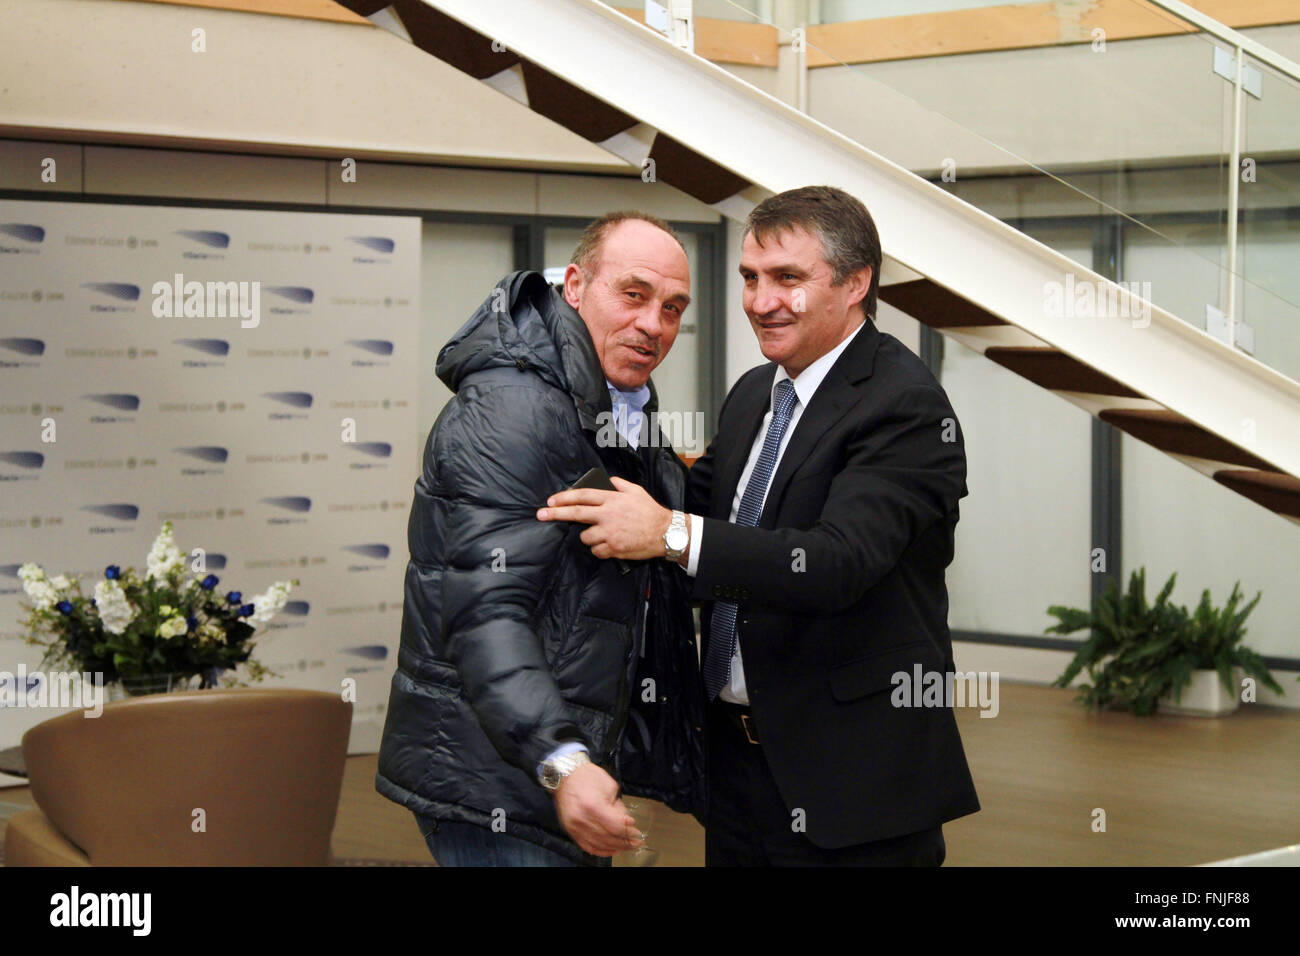 Udine, Italy. 15th Mar, 2016. Udinese's Head Coach Luigi De Canio (R) with Franco Causio ex football player during Stock Photo